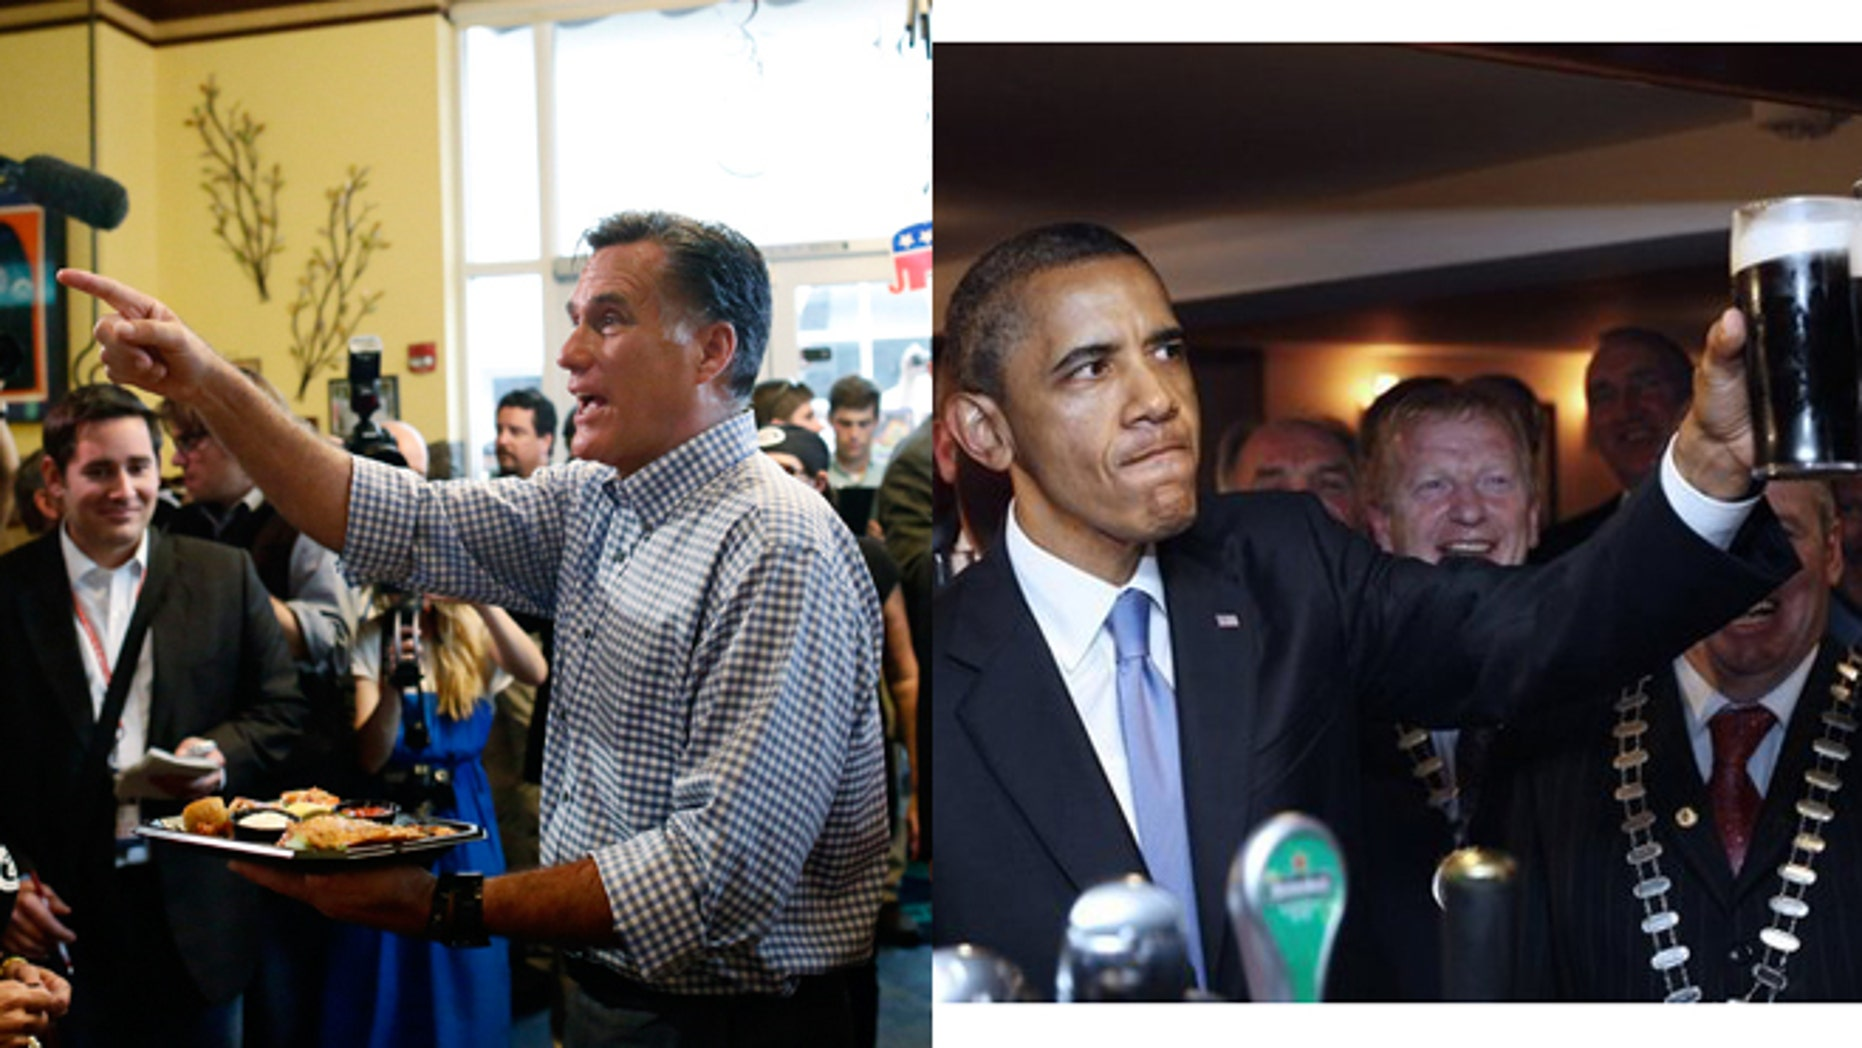 Mitt Romney stops at Tin Fish restaurant in Port St. Lucie, Fla. on Oct. 7 and President Obama in a pub in Moneygall, Ireland on May 23, 2011.